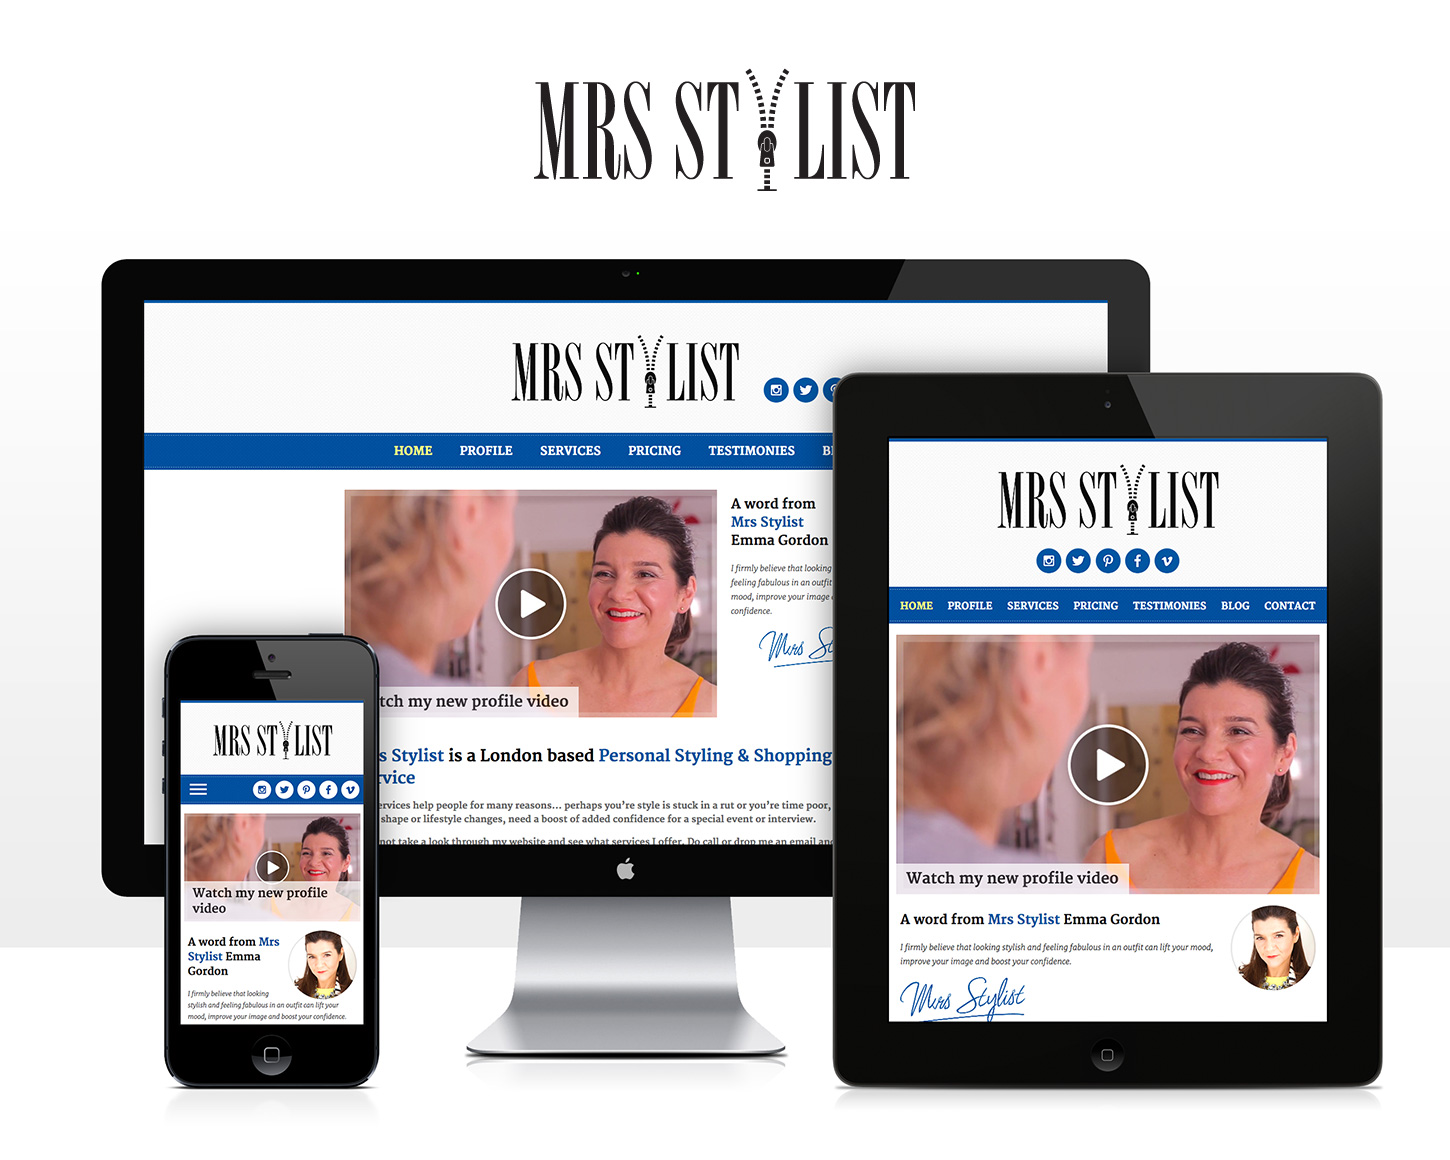 Mrs Stylist website